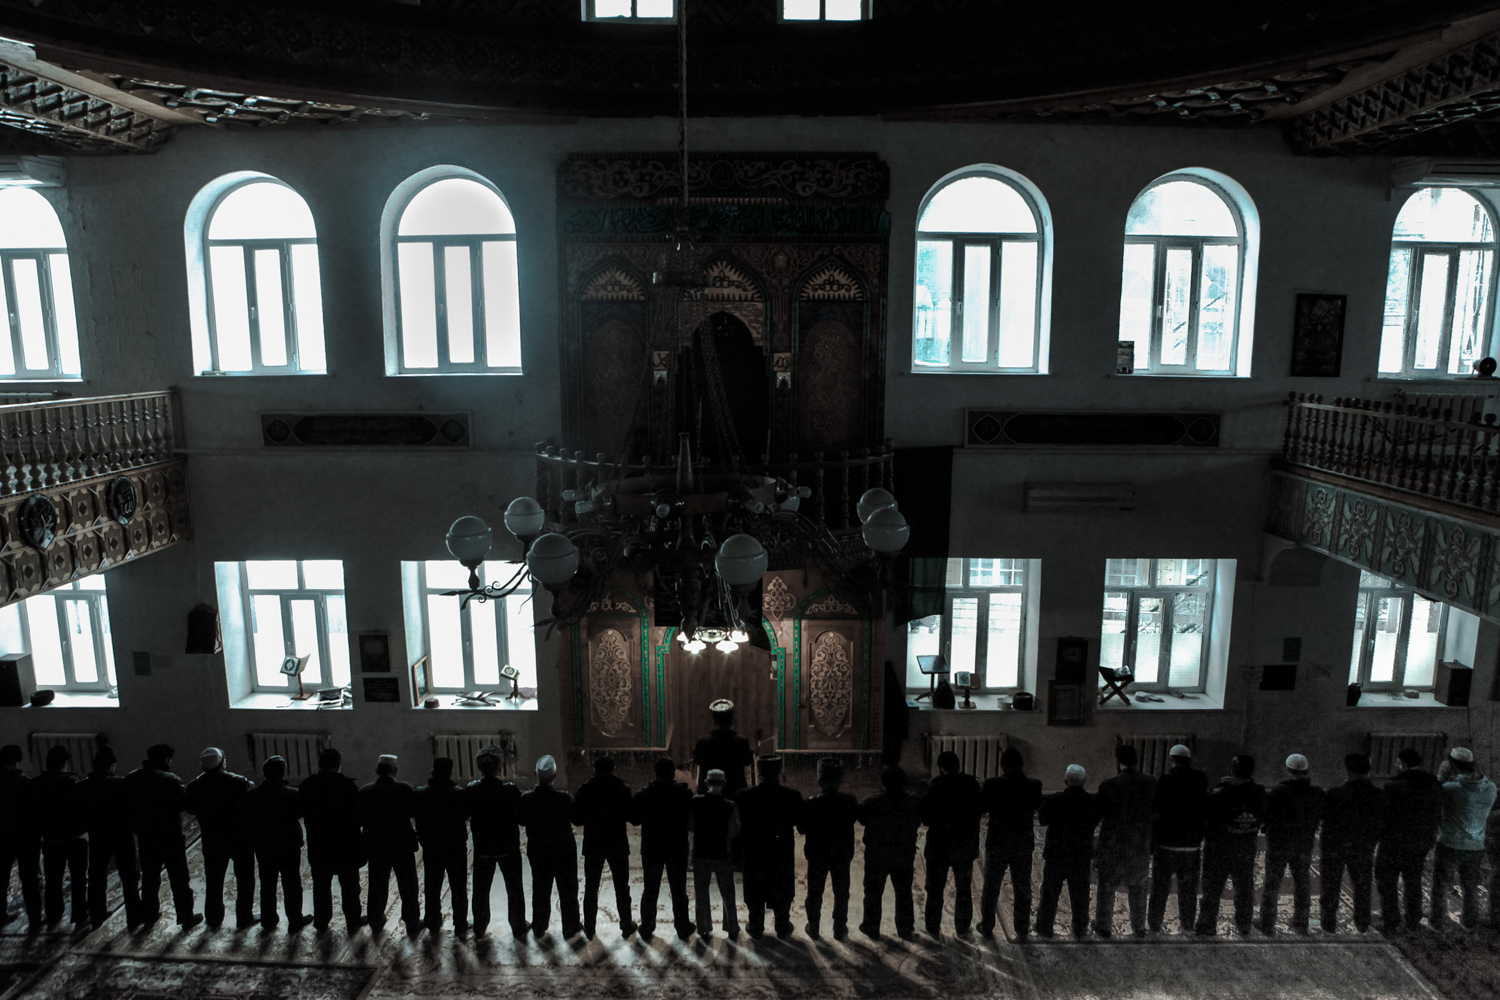 Men praying in mosque.